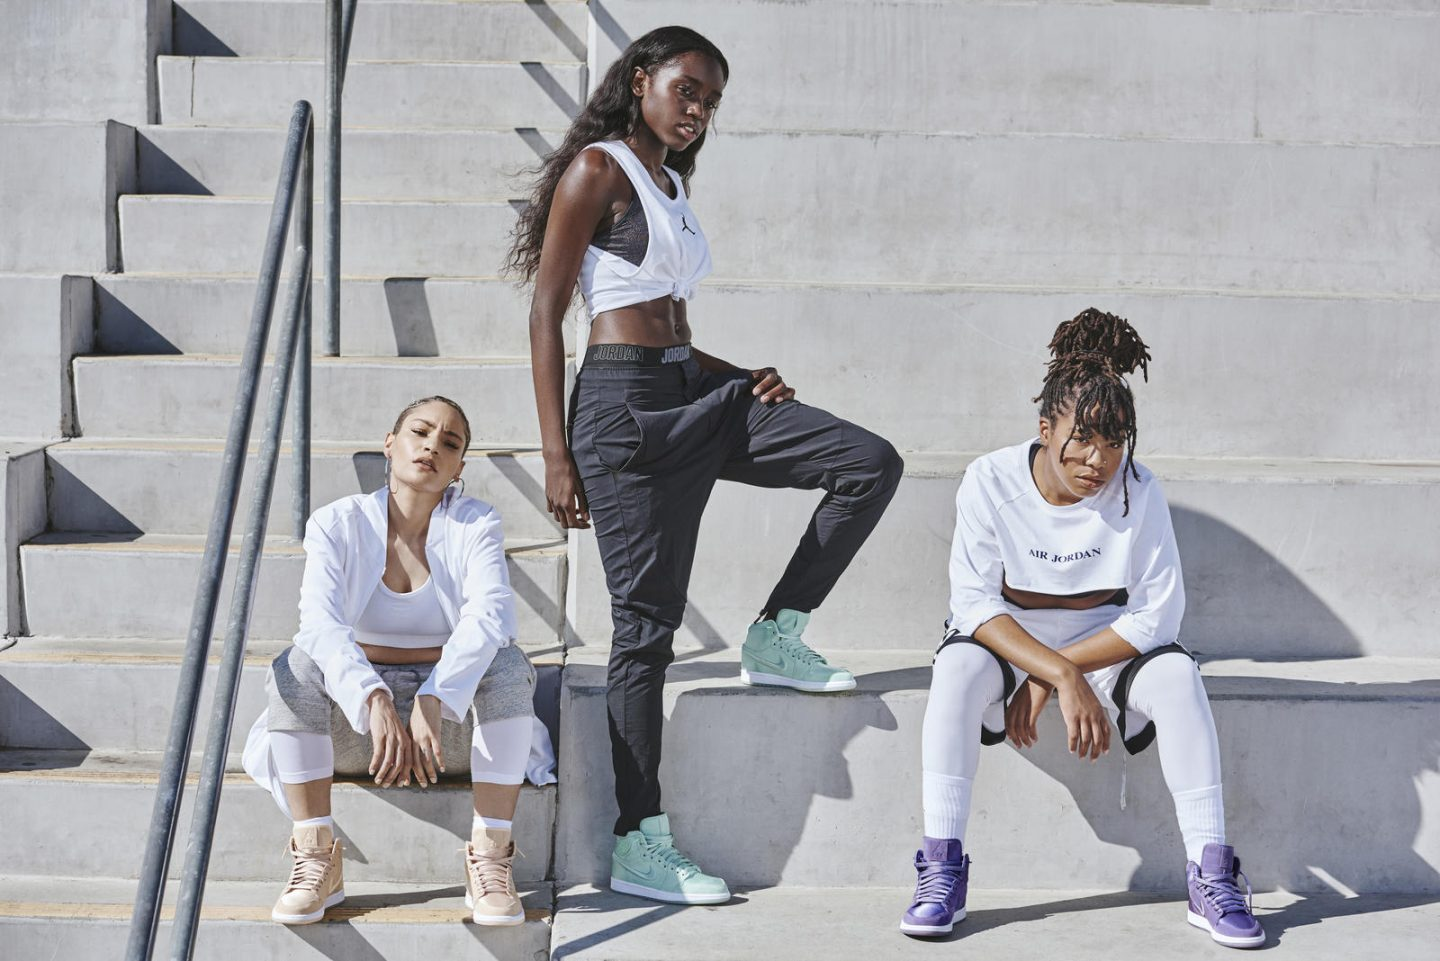 Jordan Brand Reveals Spring 2018 Women's Collection